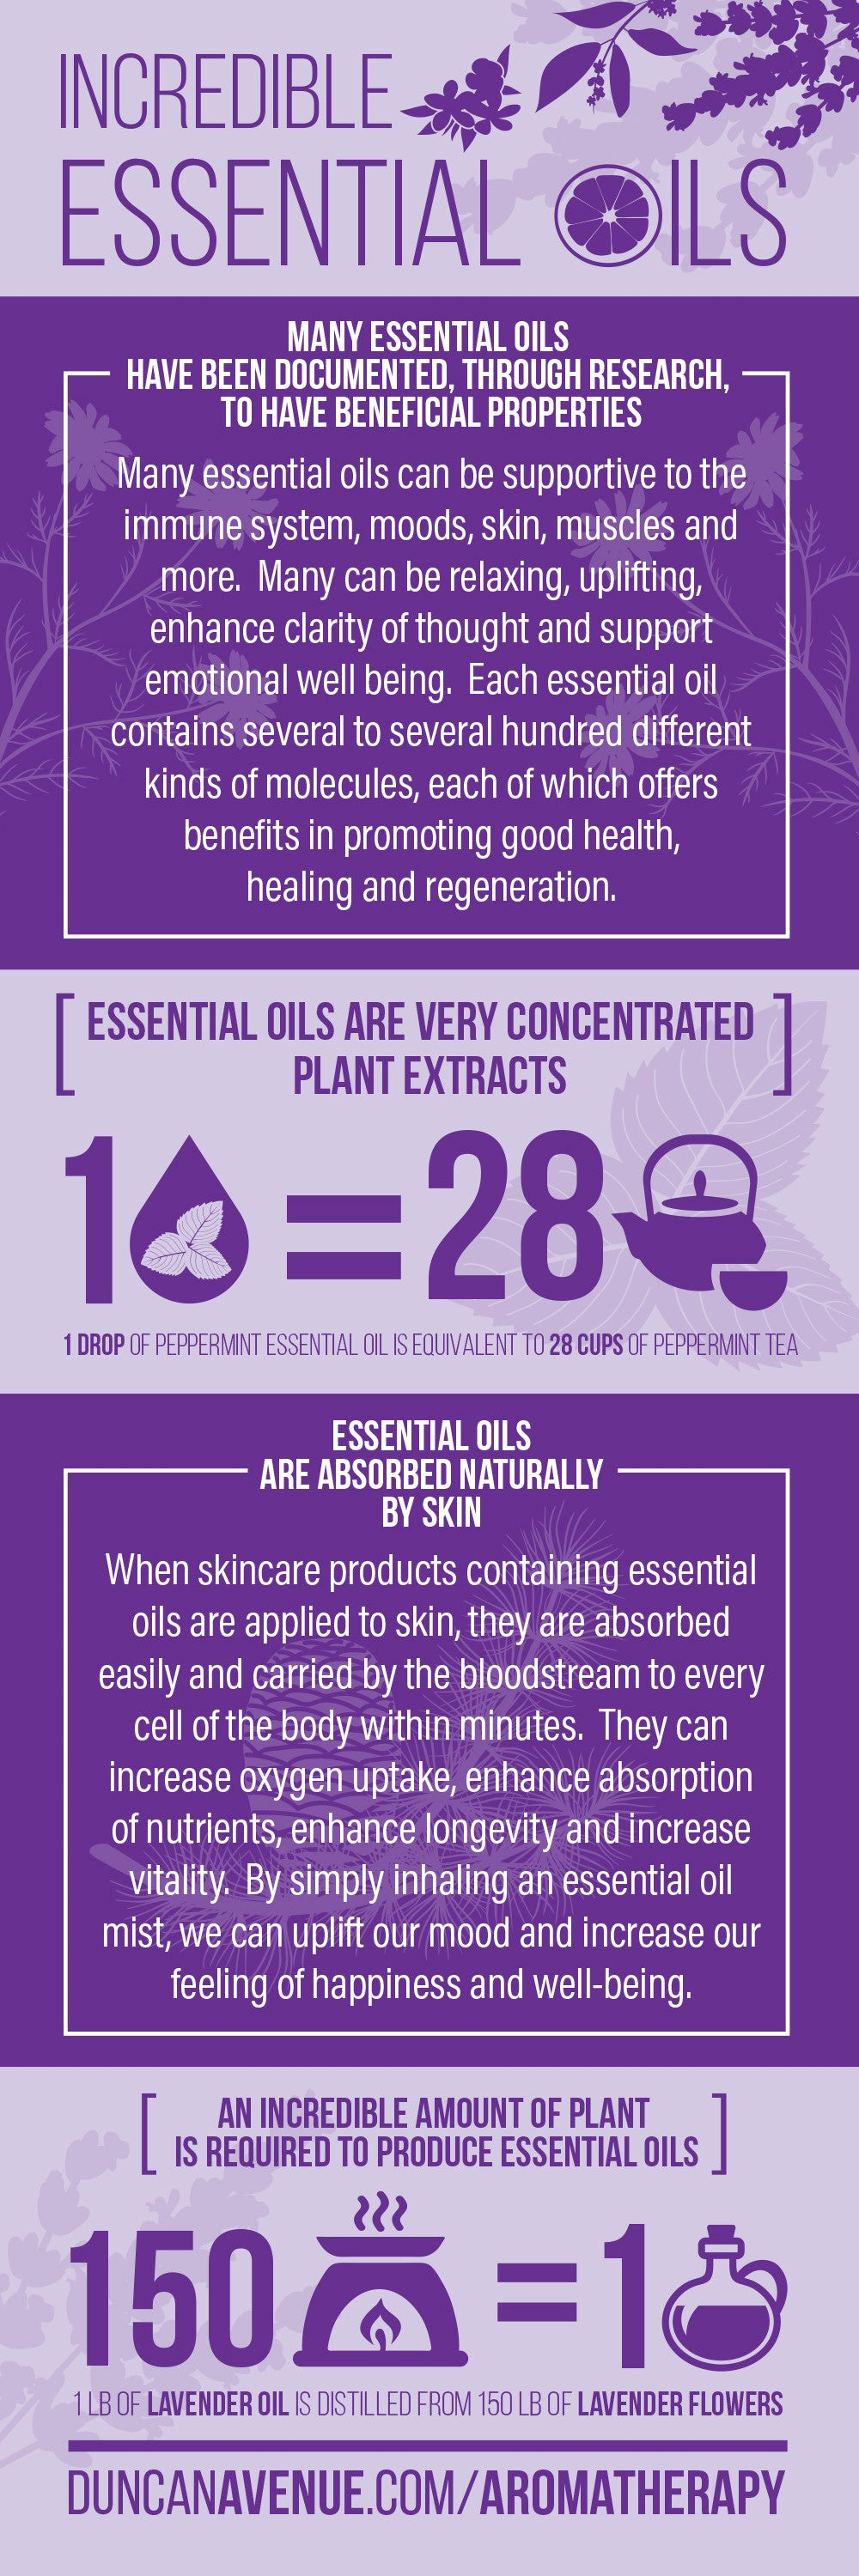 Many essential oils can be supportive to the immune system, moods, skin, muscles and more. Many can be relaxing, uplifting, enhance clarity of thought and support emotional well-being. Each essential oil contains several to several hundred different kinds of molecules, each of which offers benefits in promoting good health, healing, and regeneration.